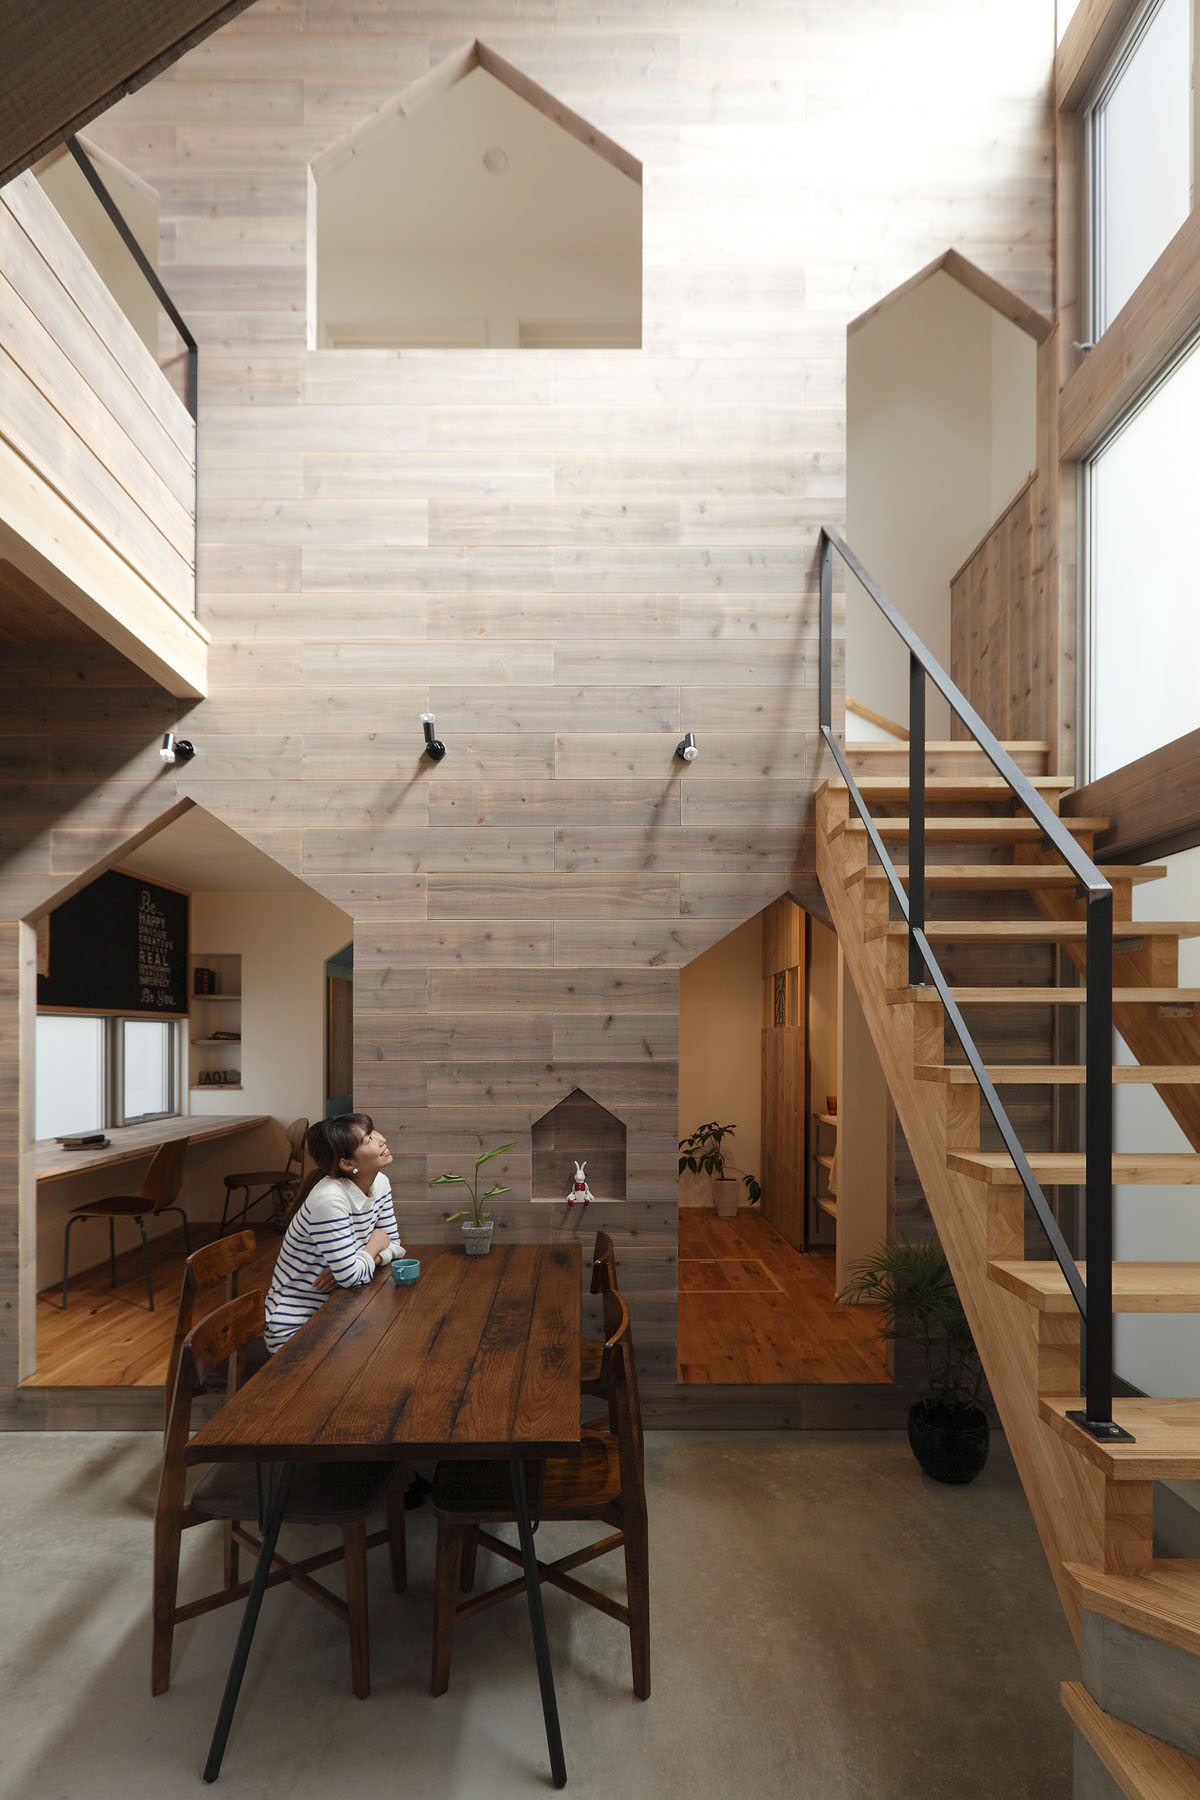 Small modern house in kyoto with wood interiors for Modern japanese house interior design